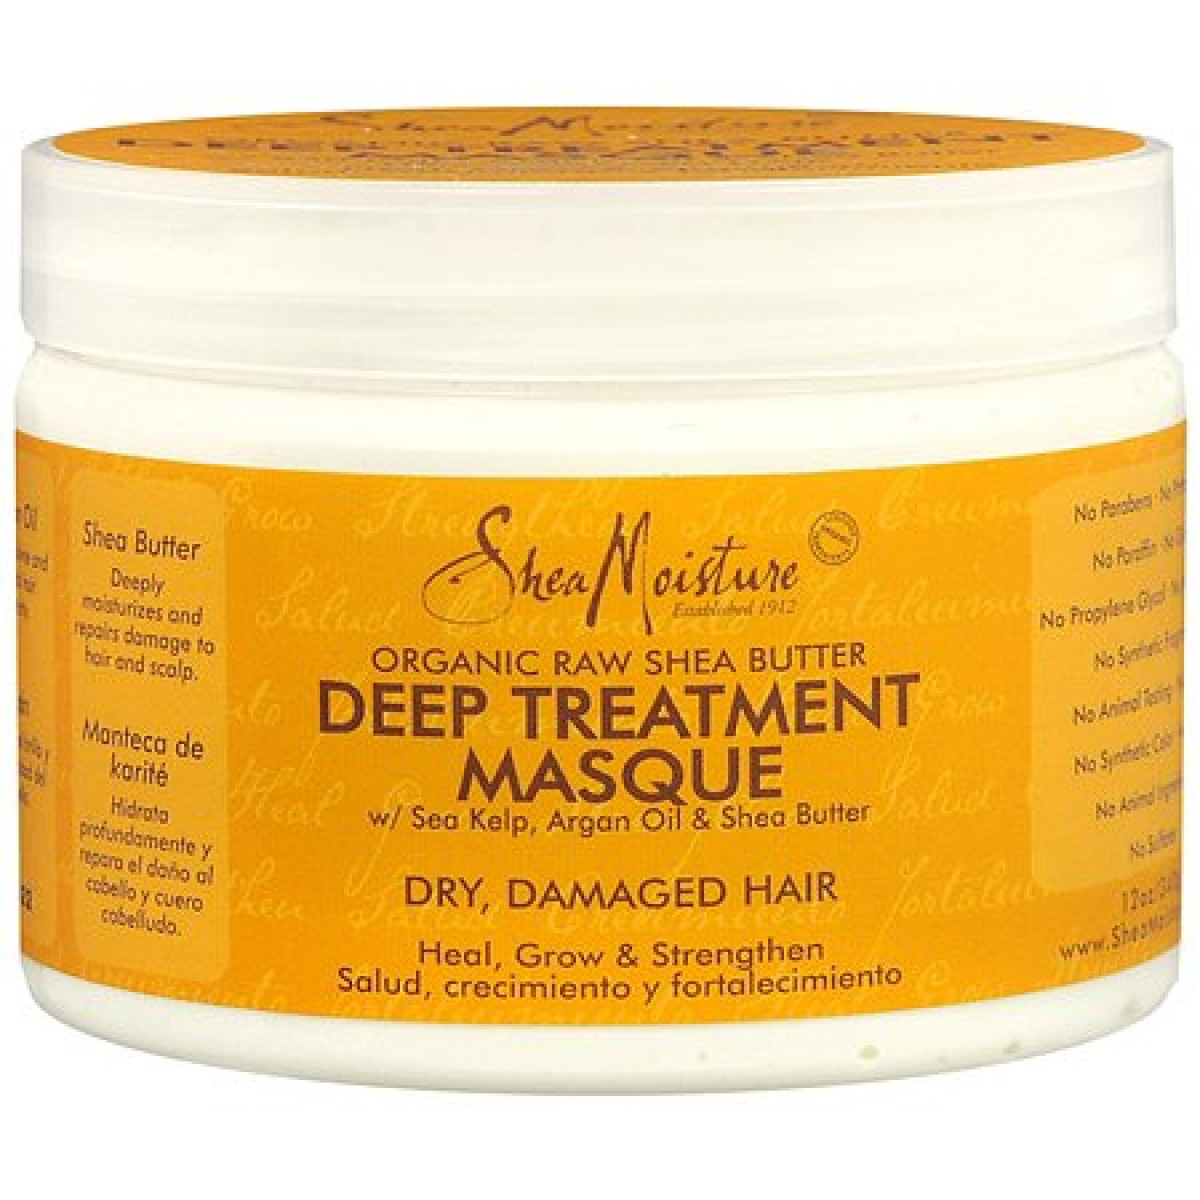 Shea Moisture Organic Shea Butter Deep Treatment Masque